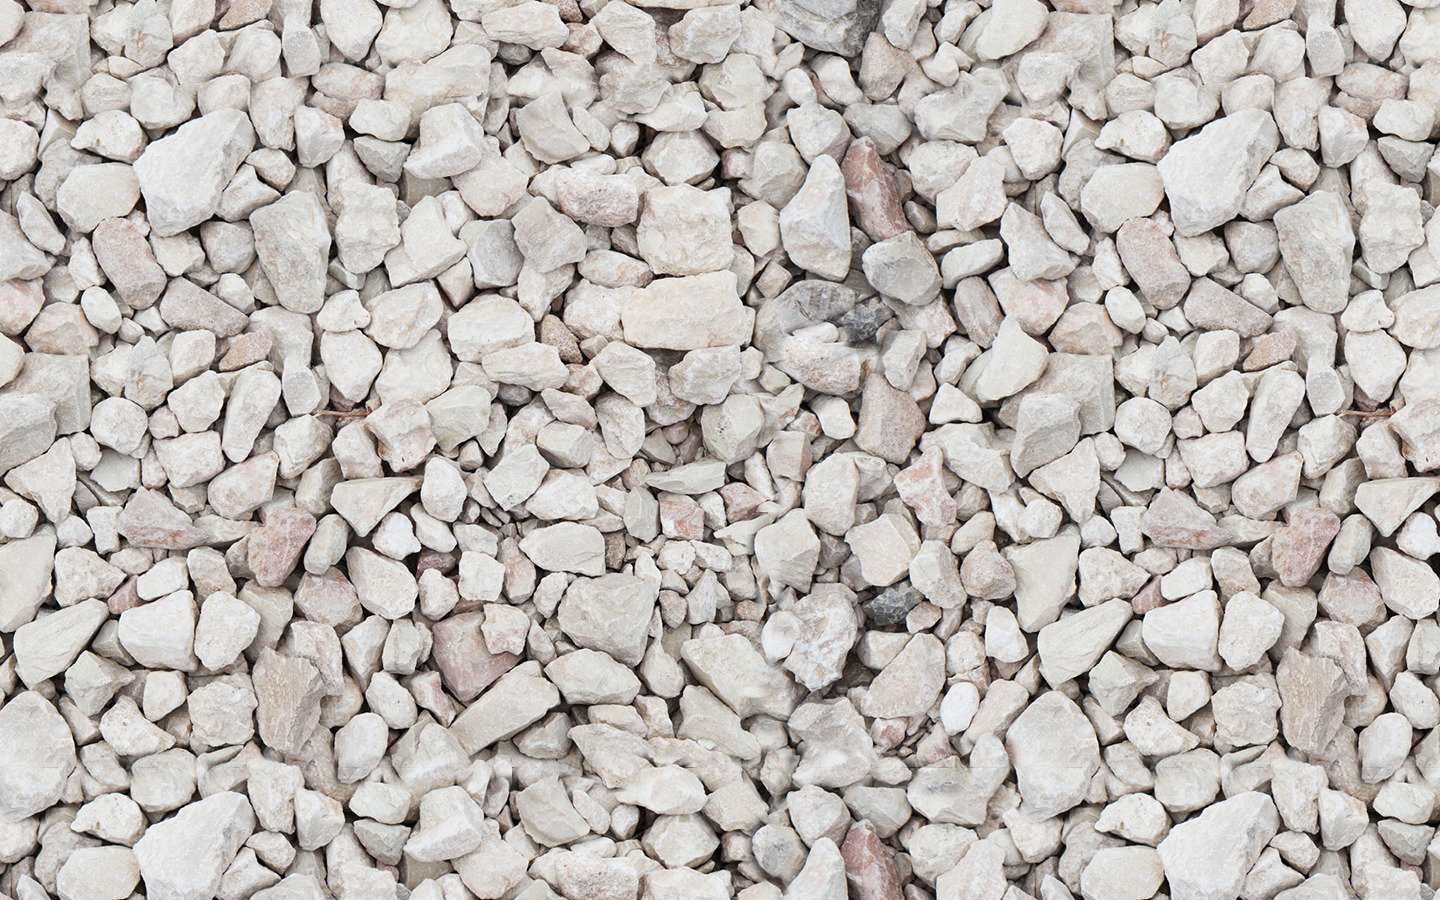 White Gravel Download Royalty Free Texture